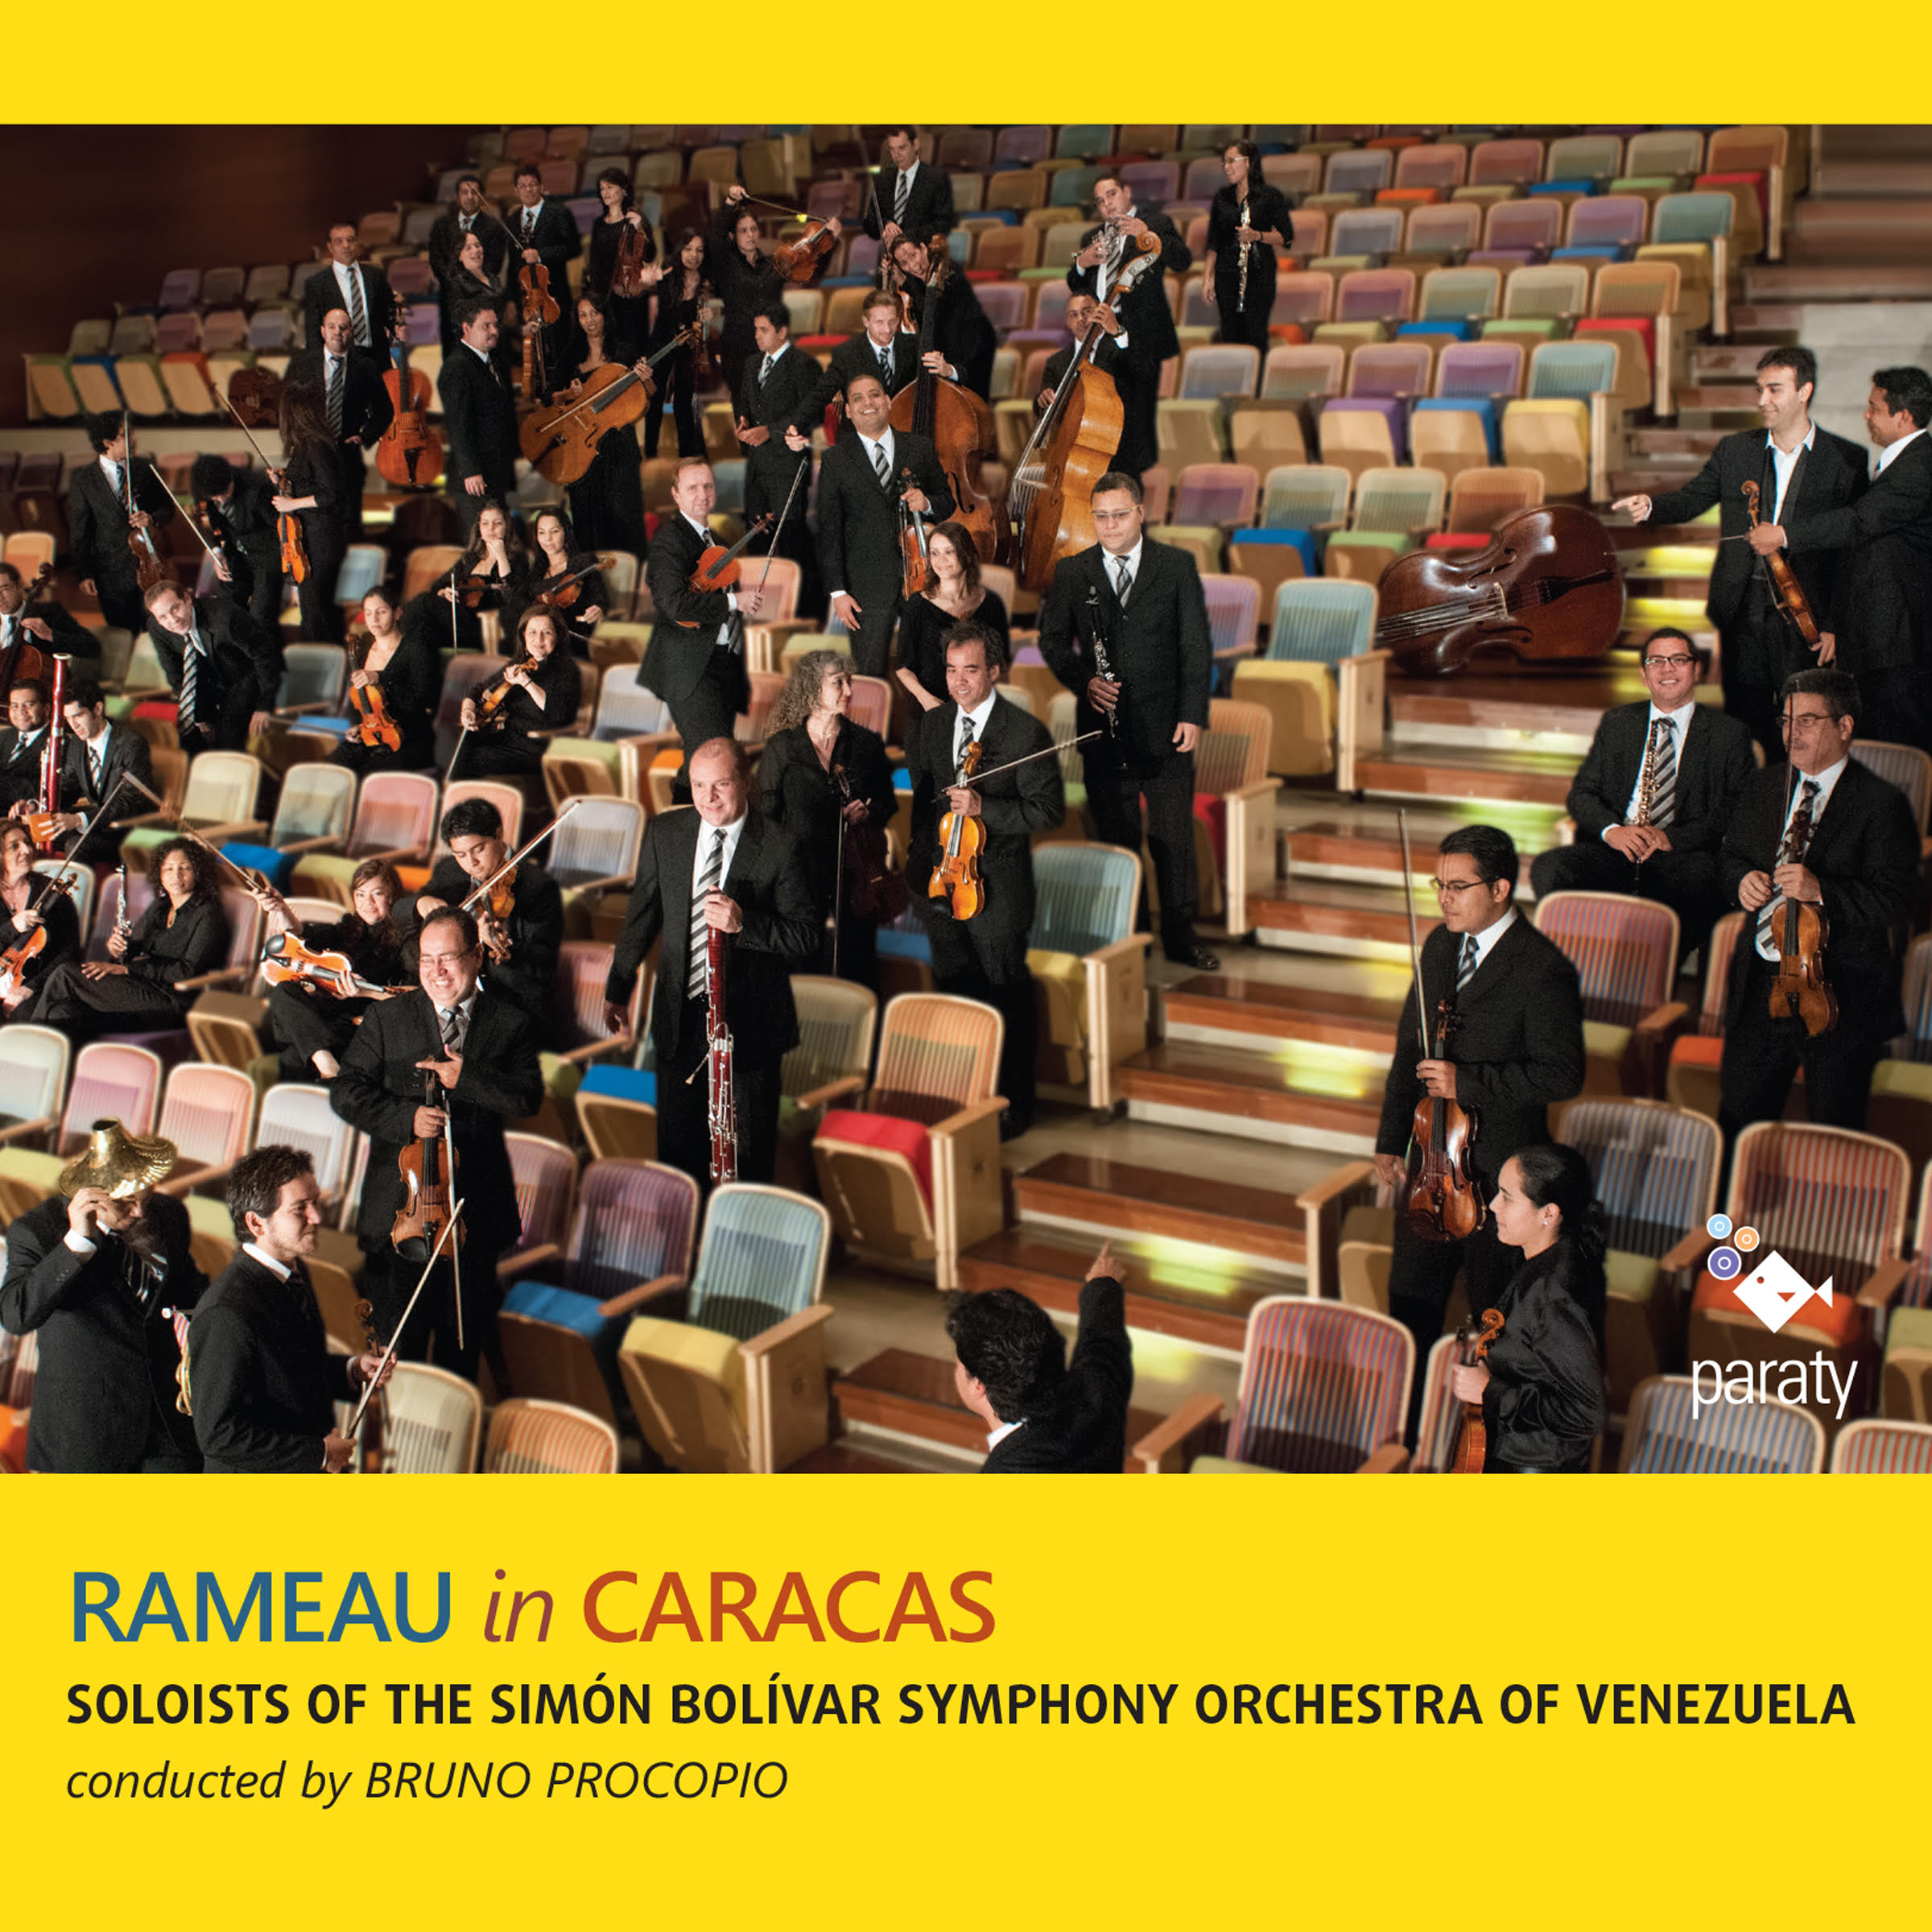 'Rameau in Caracas', Soloists of the Simón Bolívar Symphony Orchestra of Venezuela